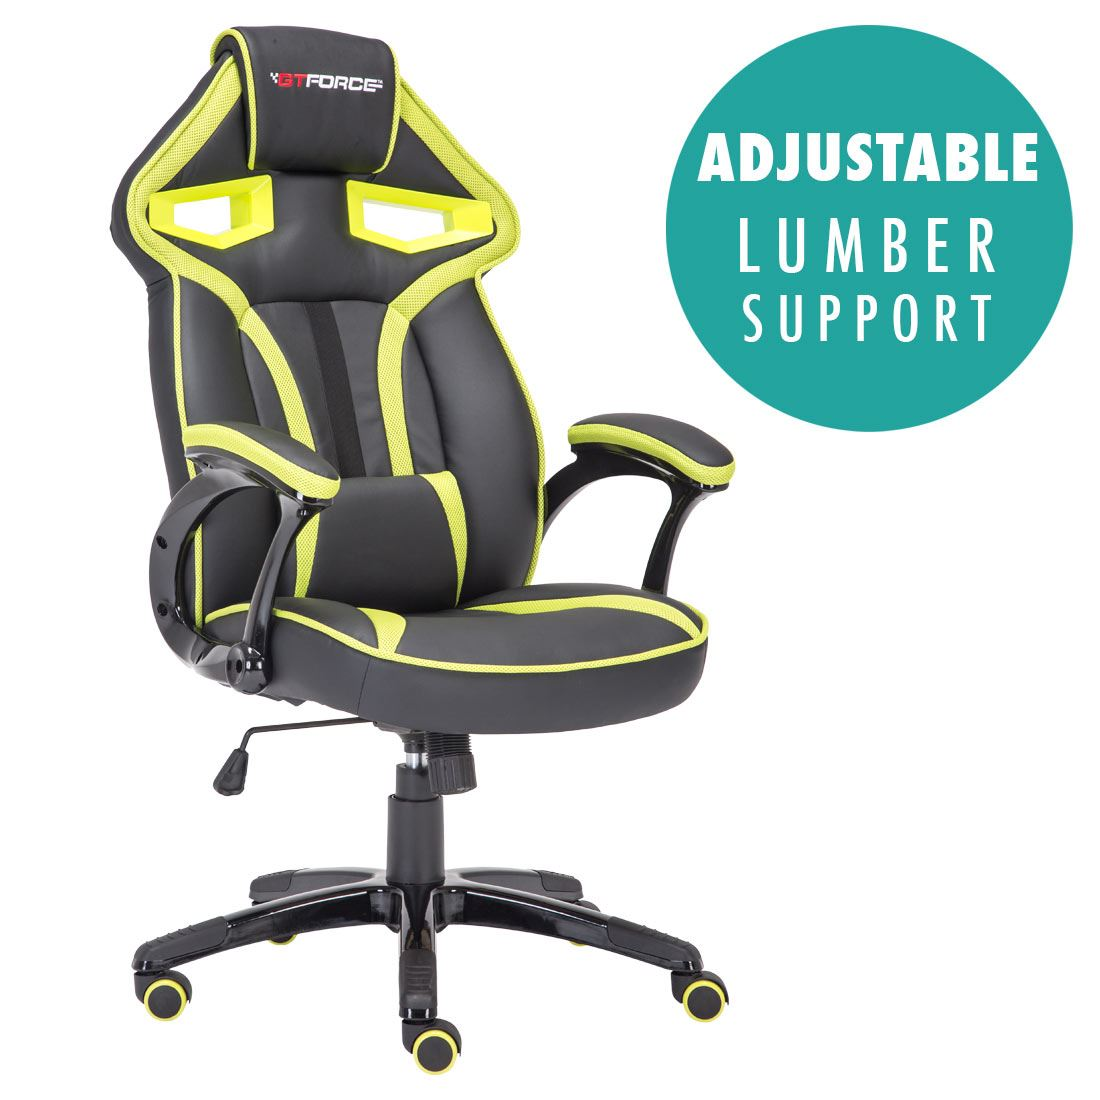 GTFORCE-ROADSTER-1-SPORT-RACING-CAR-OFFICE-GAMING-CHAIR-LEATHER-LUMBER-SUPPORT